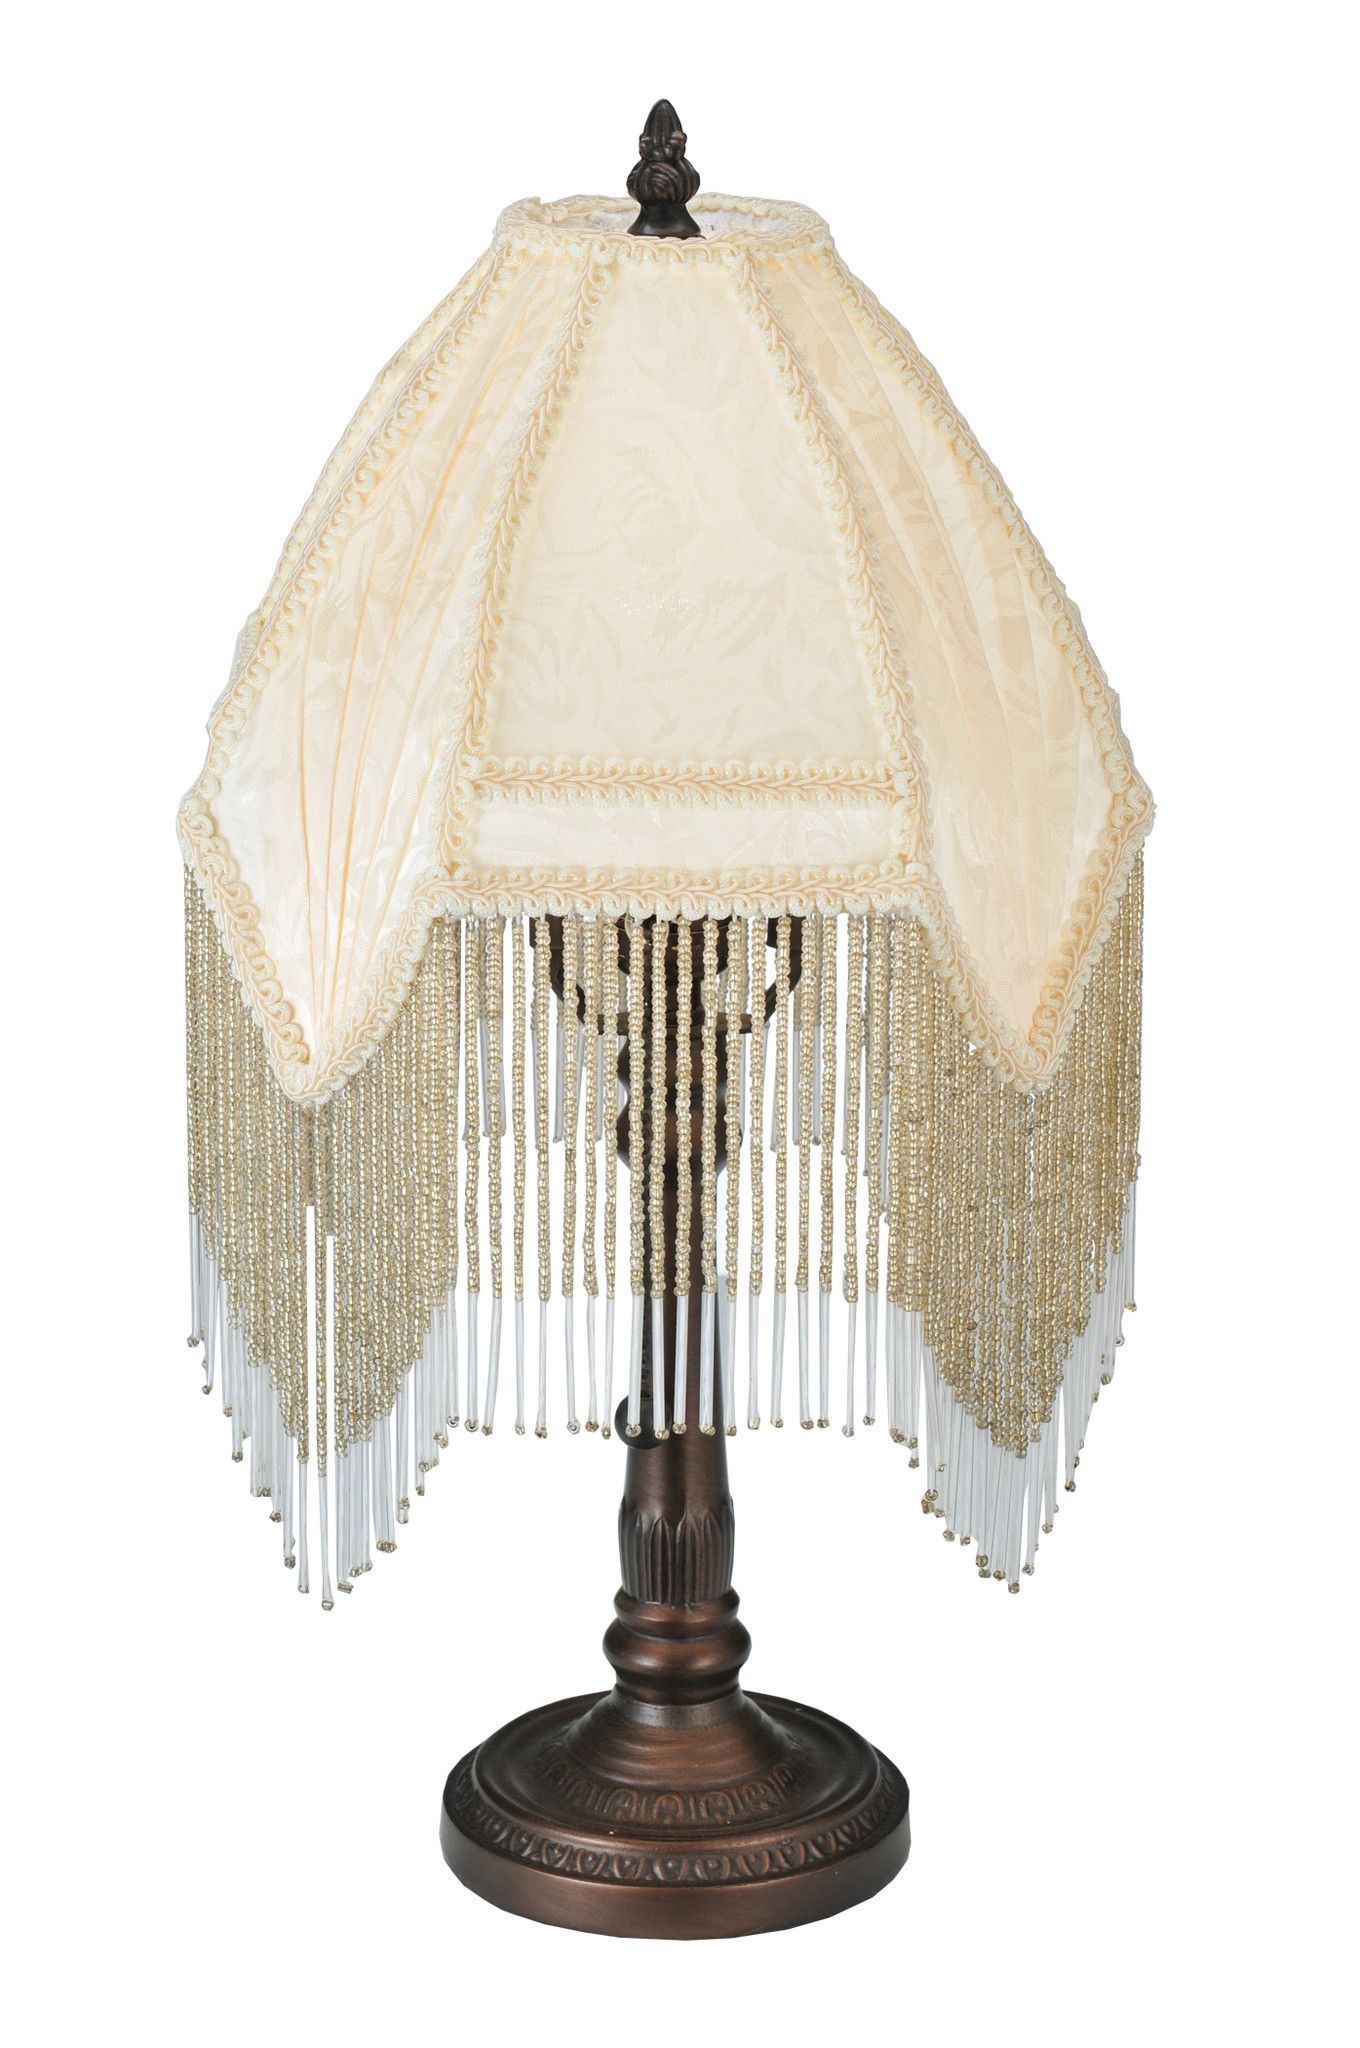 Meyda 13h arabesque fabric with fringe accent lamp products meyda 13h arabesque fabric with fringe accent lamp geotapseo Image collections